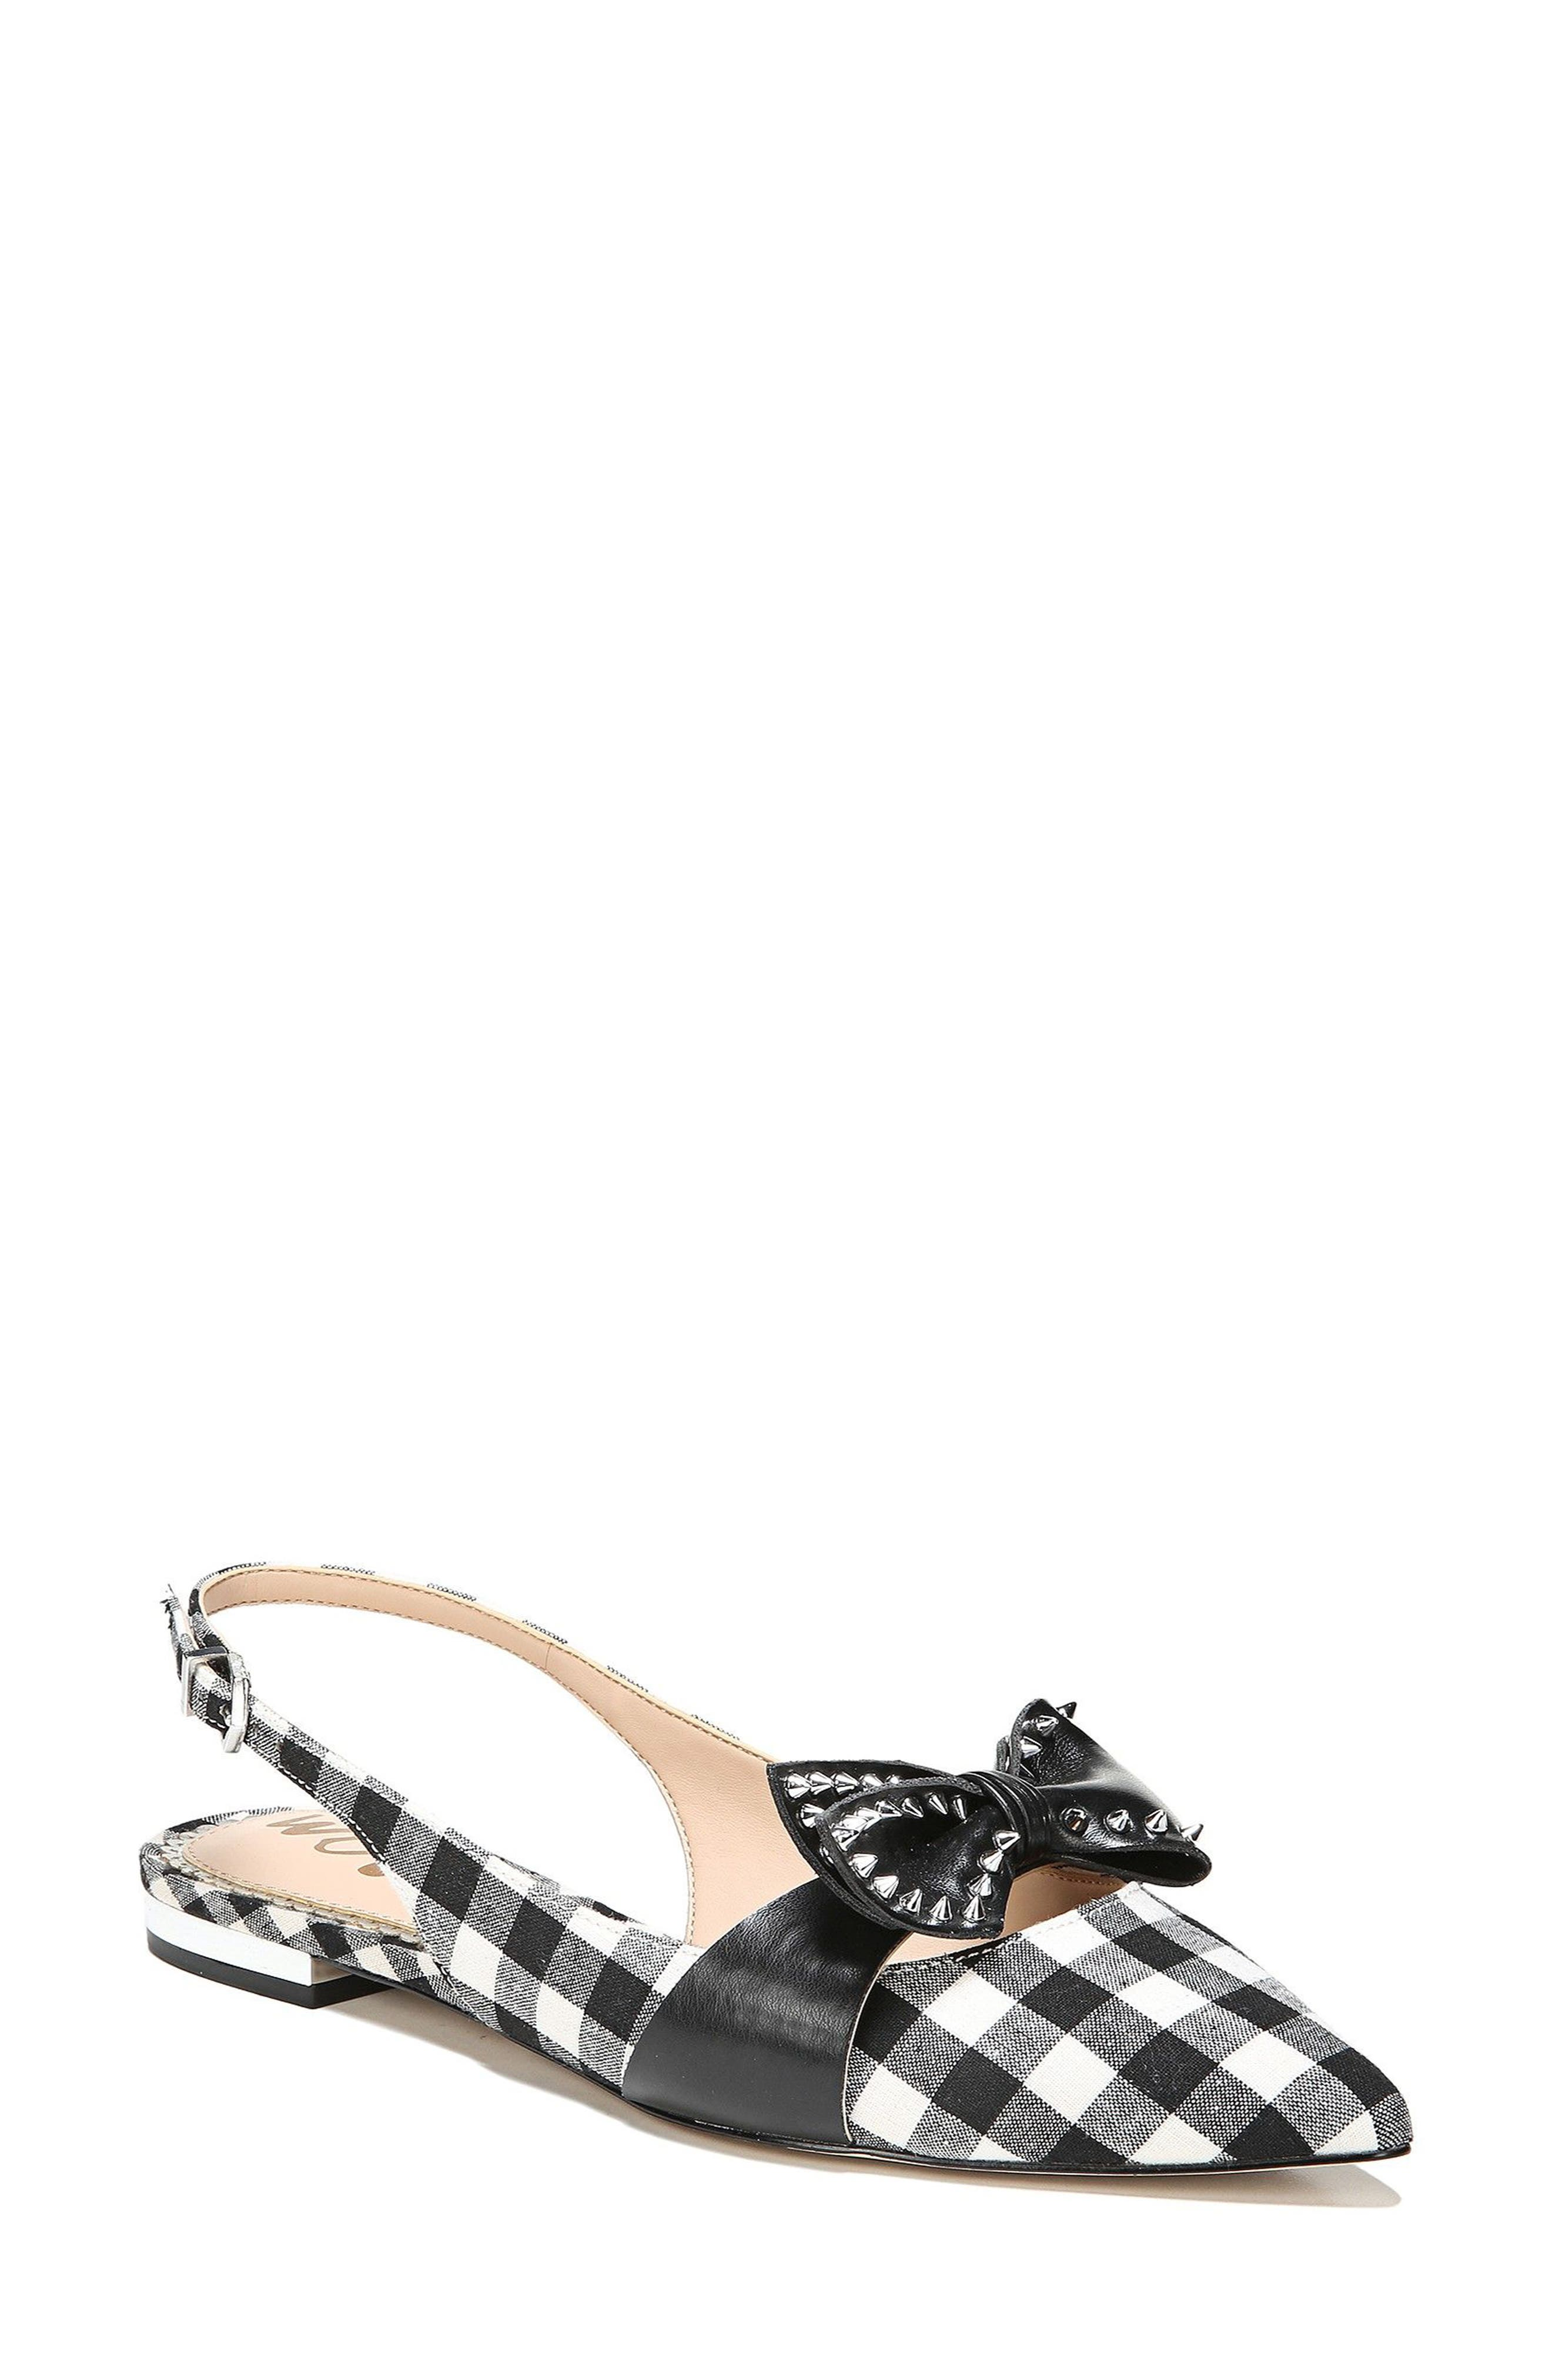 Rupert Bow Pointy Toe Flat,                         Main,                         color, Black/ White Canvas